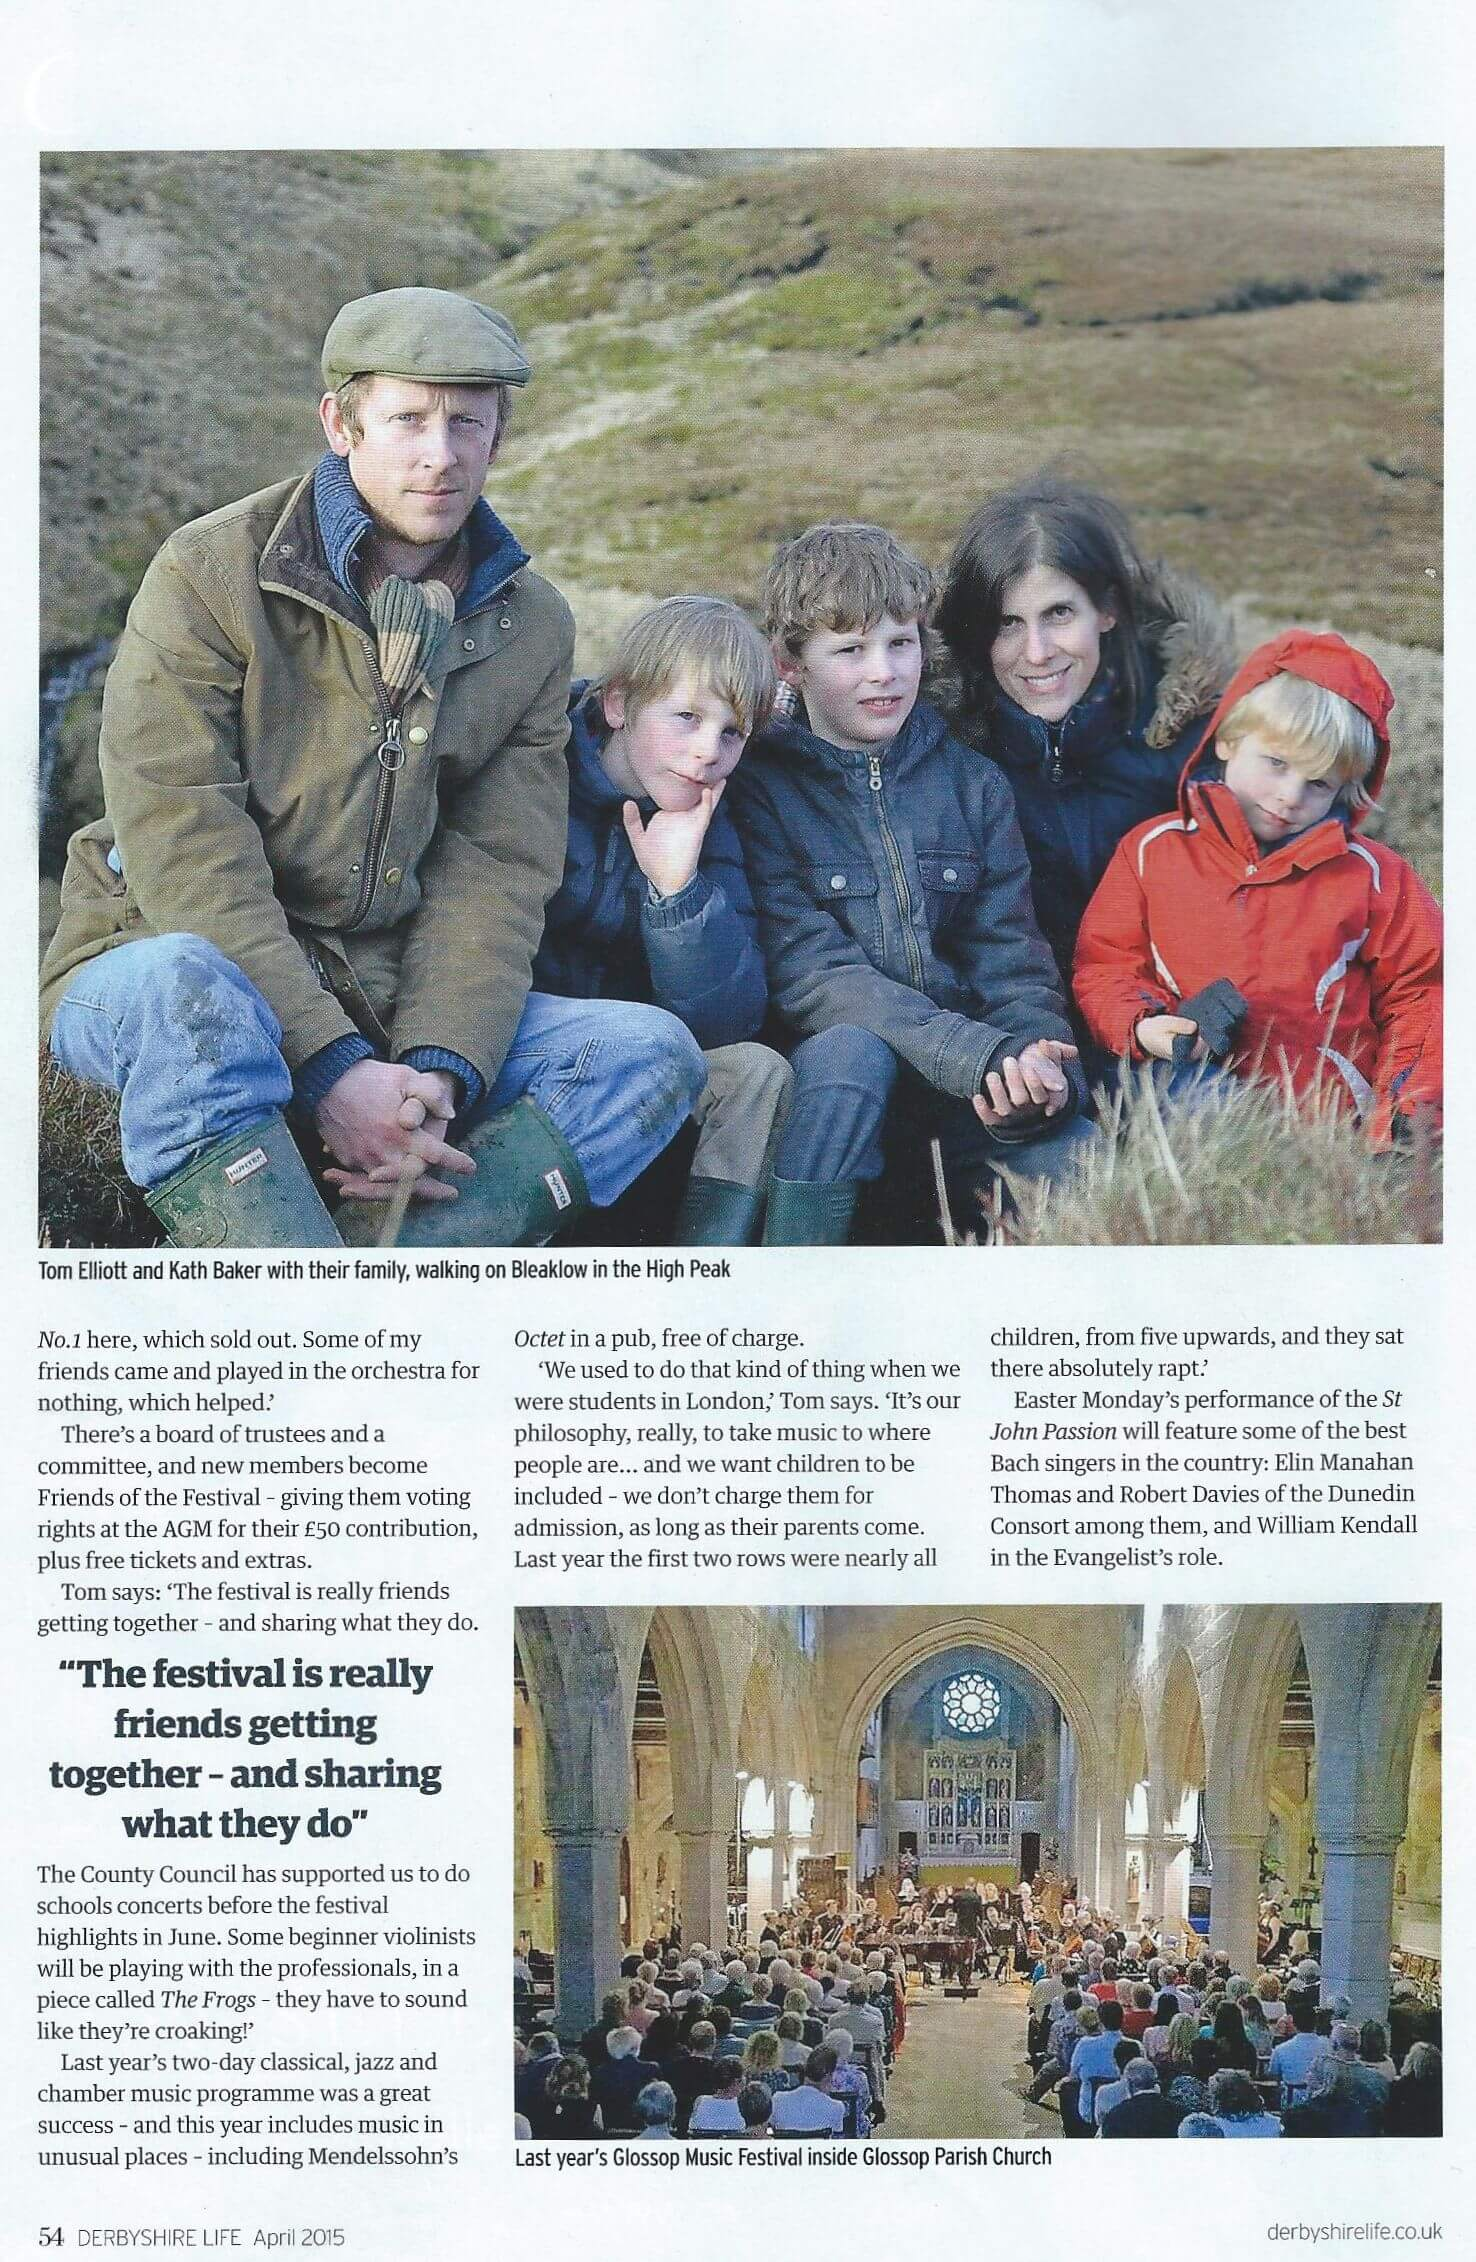 derbyshire-life-article-april-page-54-festival-25-3-2015